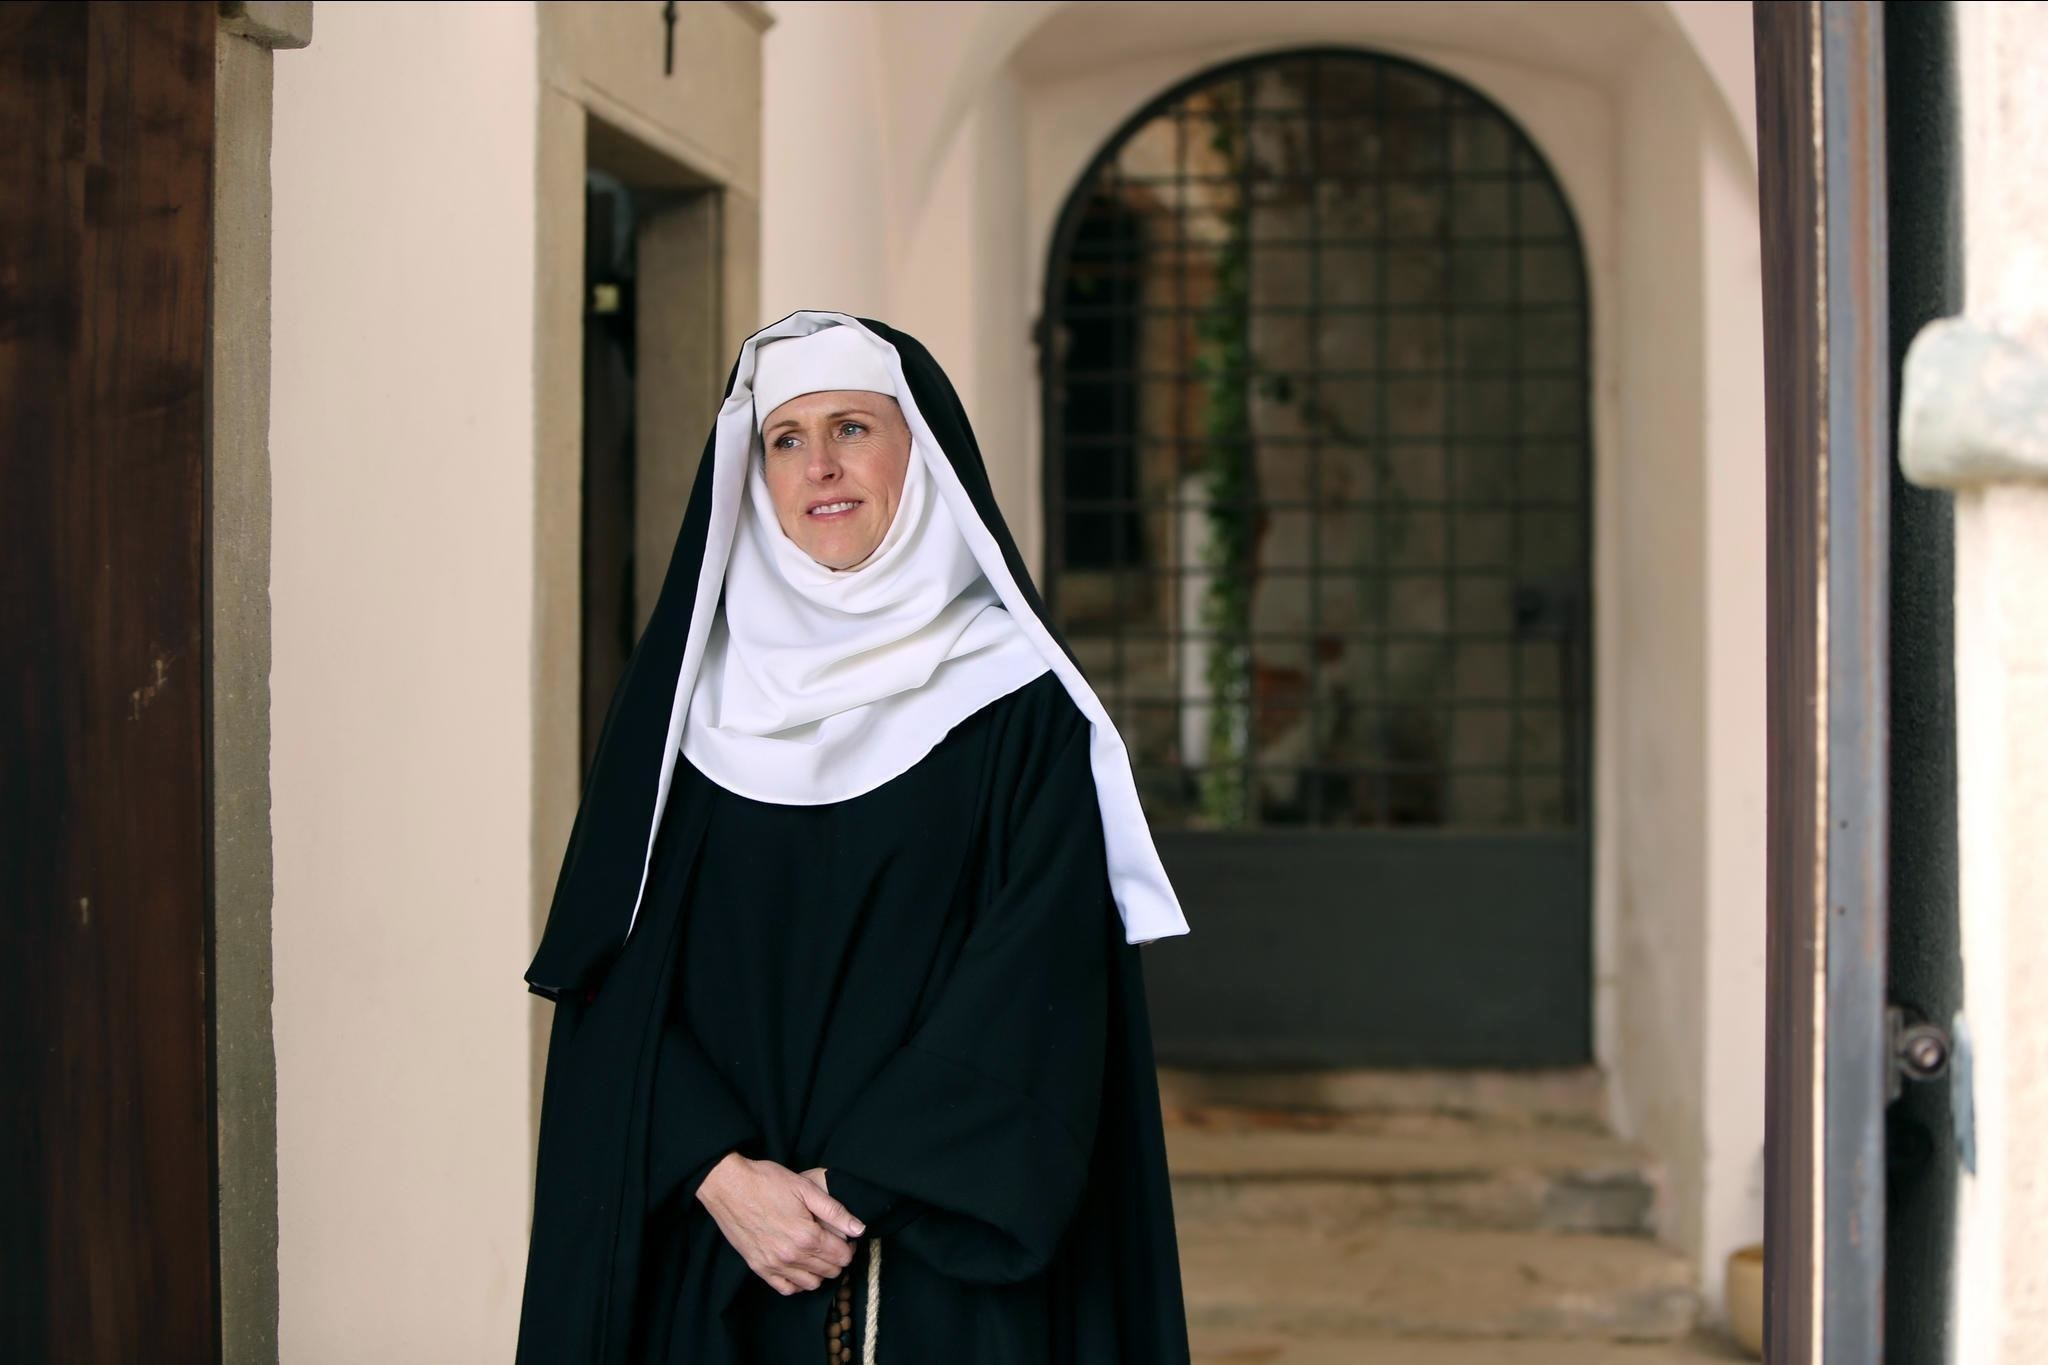 Molly Shannon stands dressed as a nun